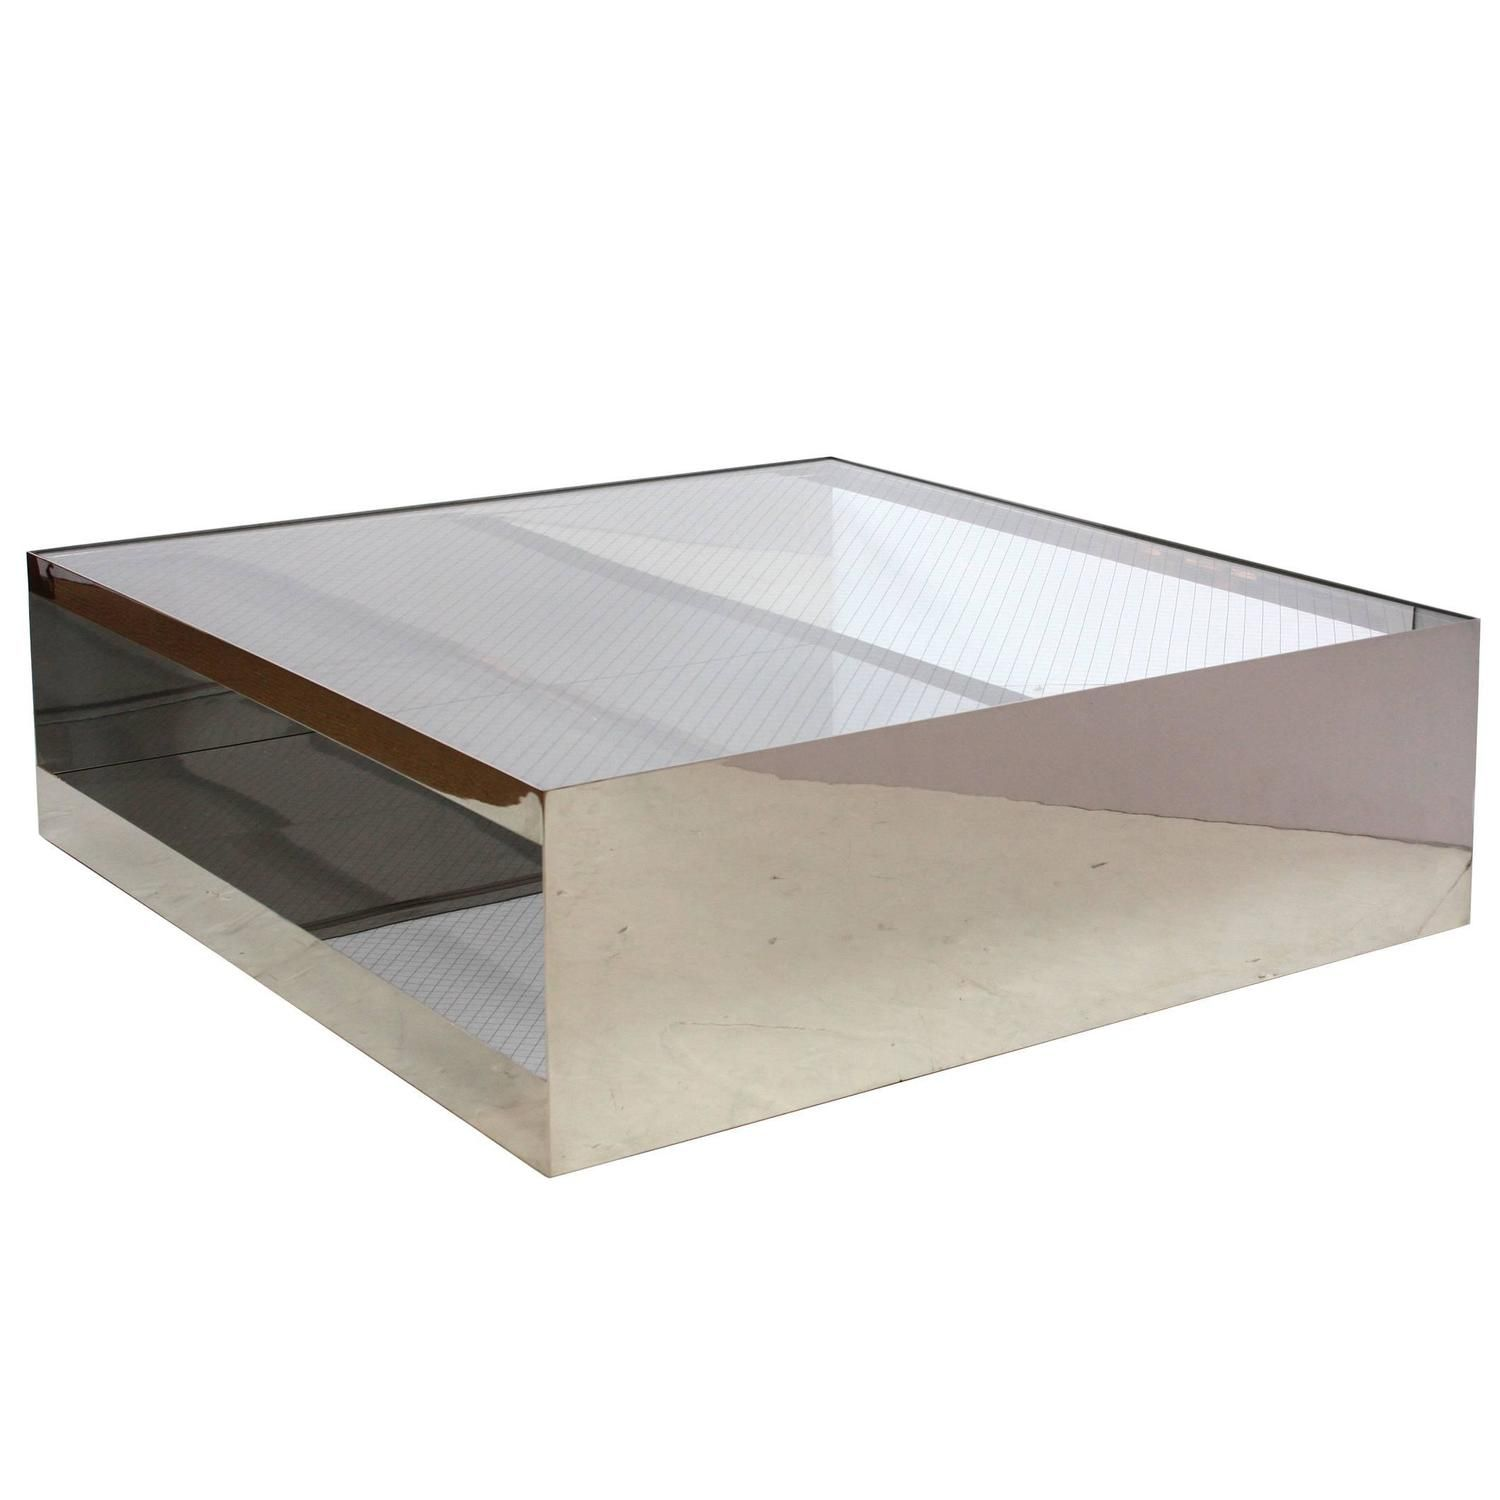 Joseph D Urso S Industrial Coffee Table Of Steel And Glass Knoll International Coffee Table Industrial Coffee Table Coffee Table Square [ 1500 x 1500 Pixel ]